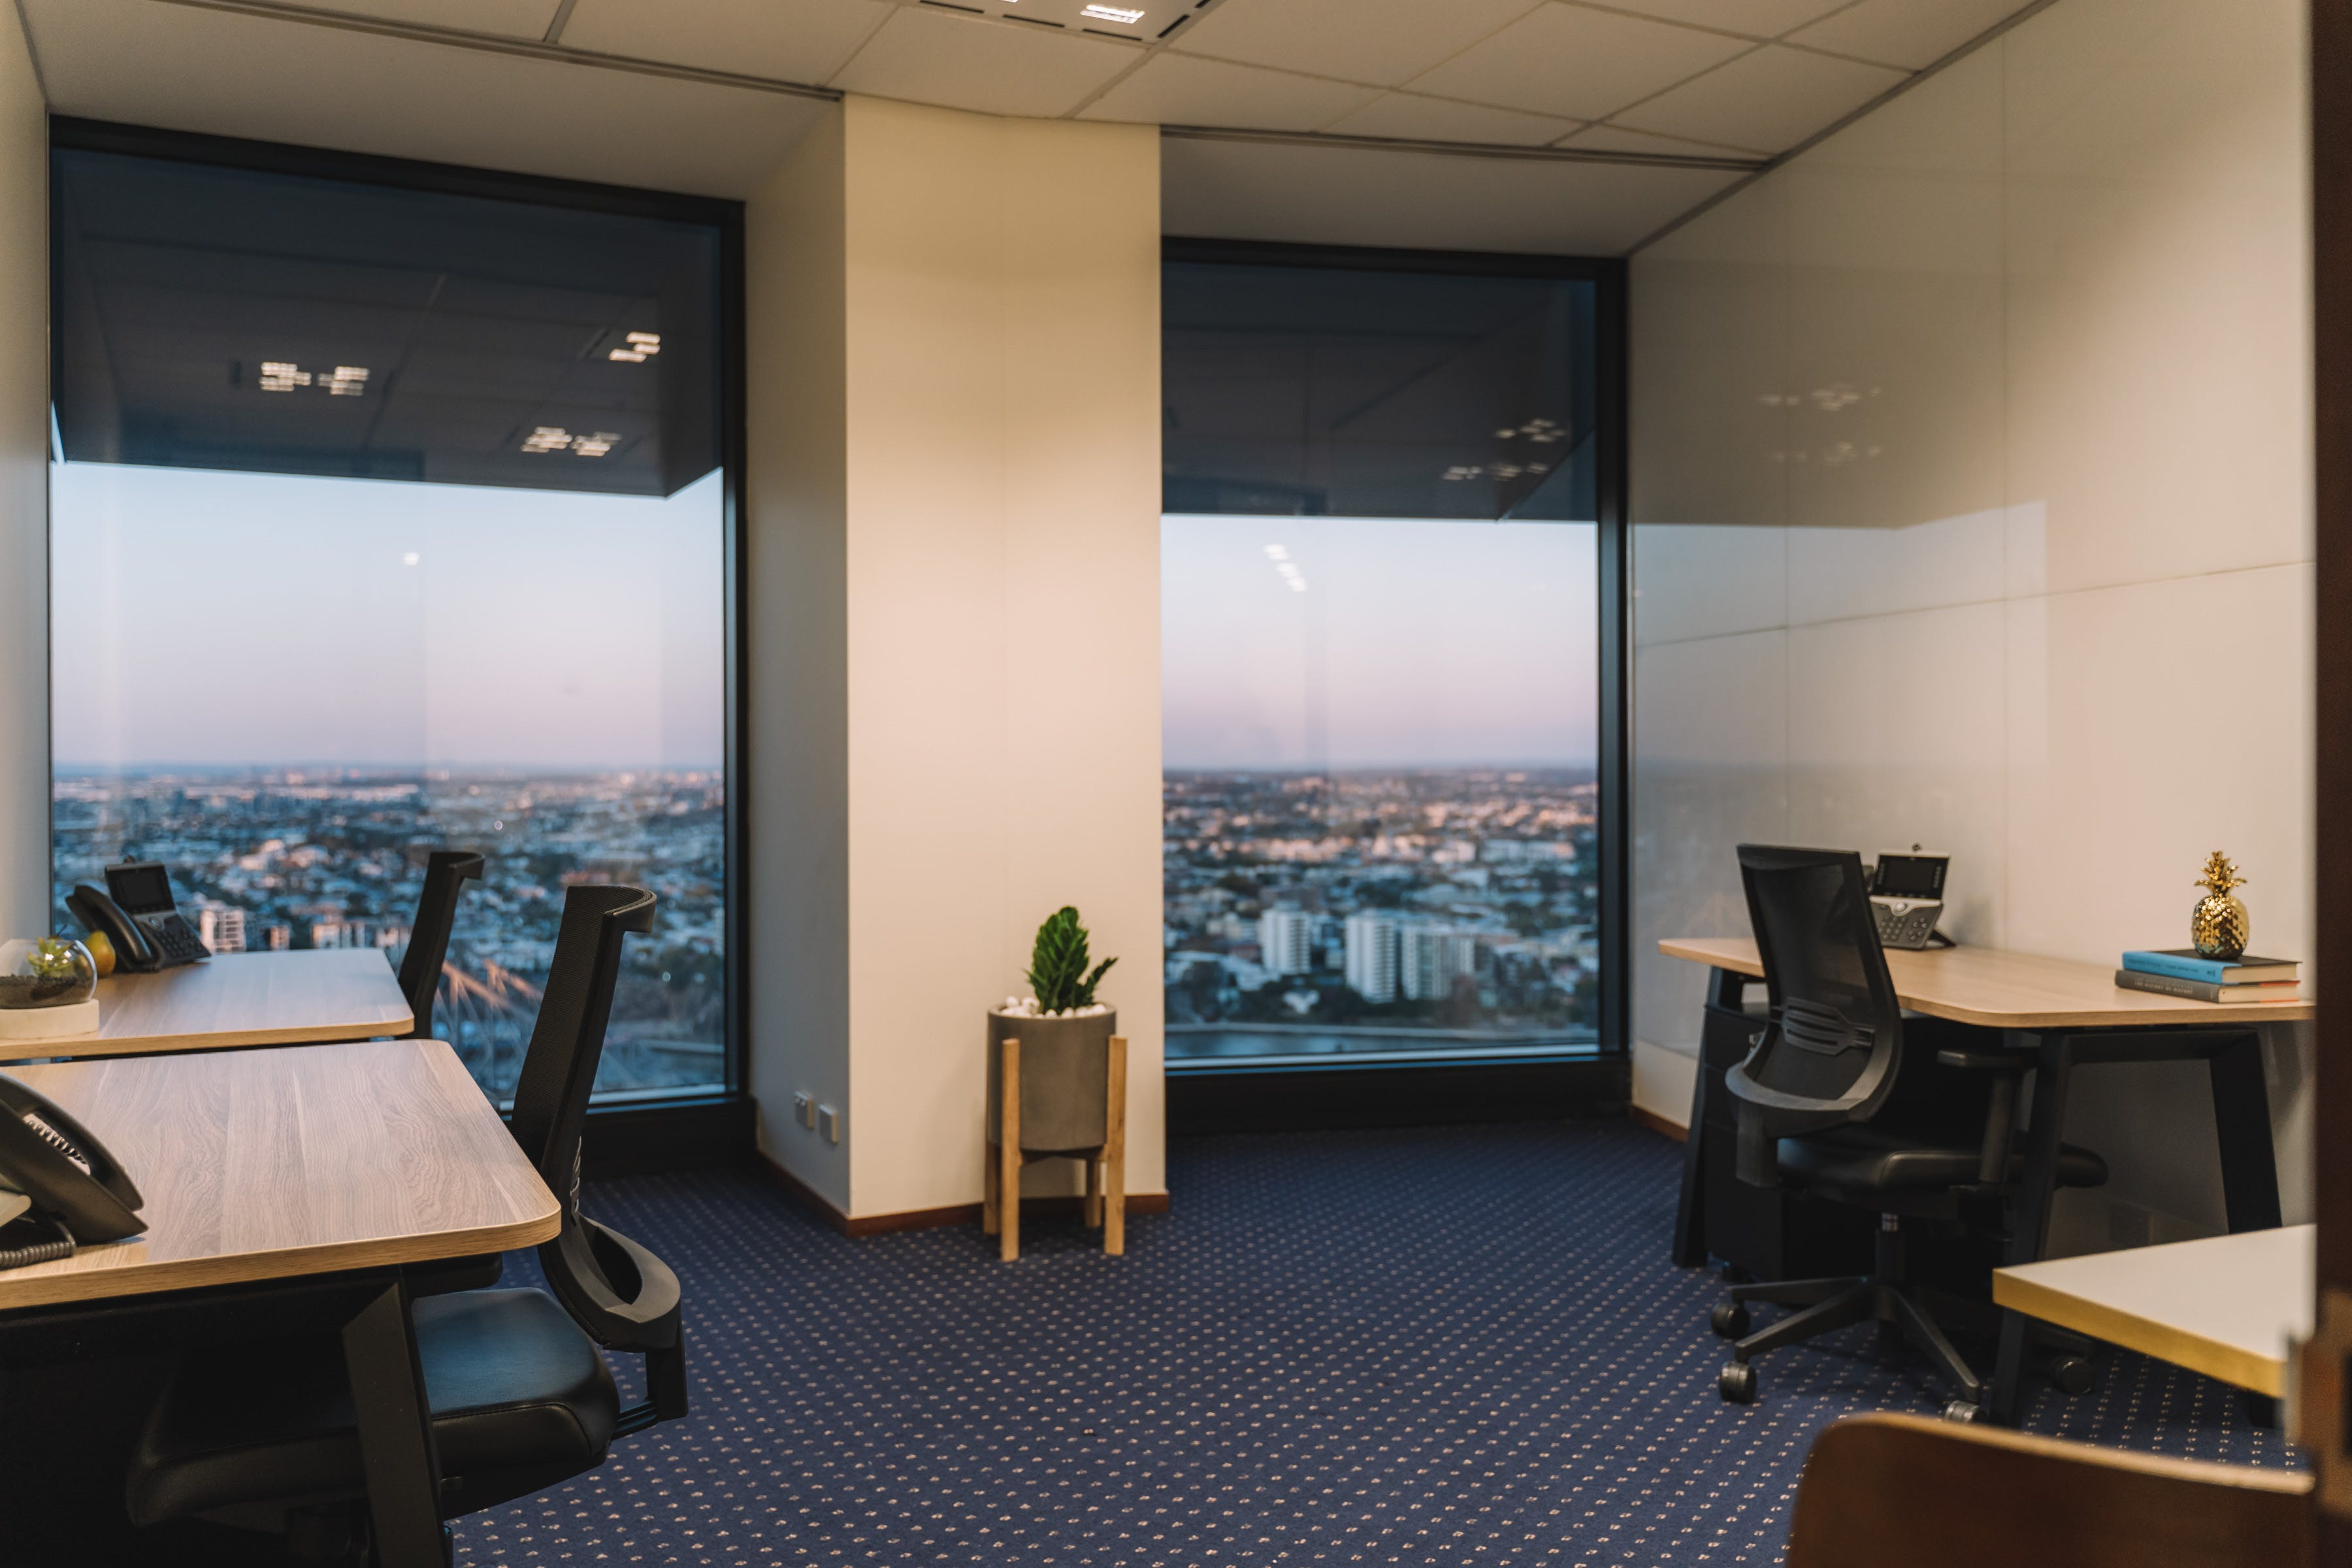 Premium Day Suite with Swan River views, private office at Brookfield Place, image 7